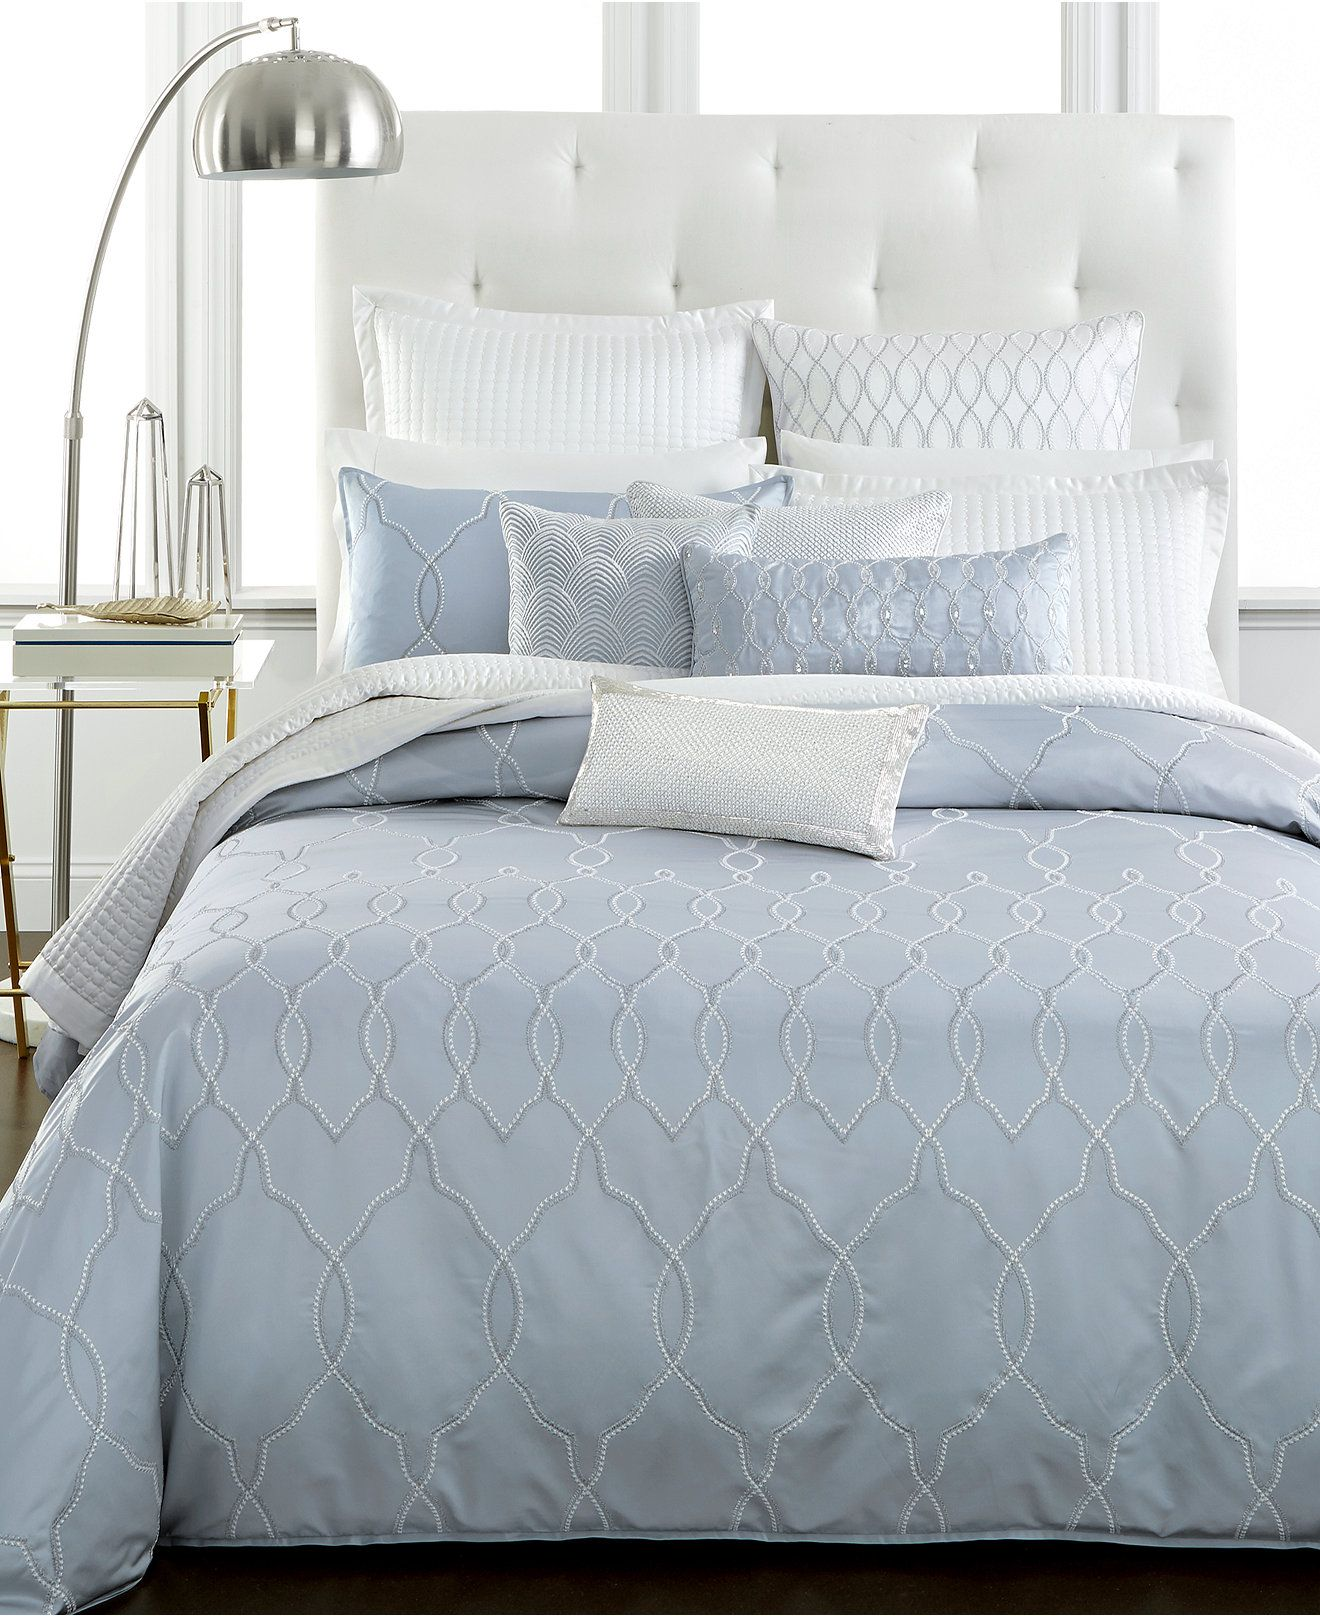 hotel collection finest pendant bedding collection only at macyu0027s bedding collections bed u0026